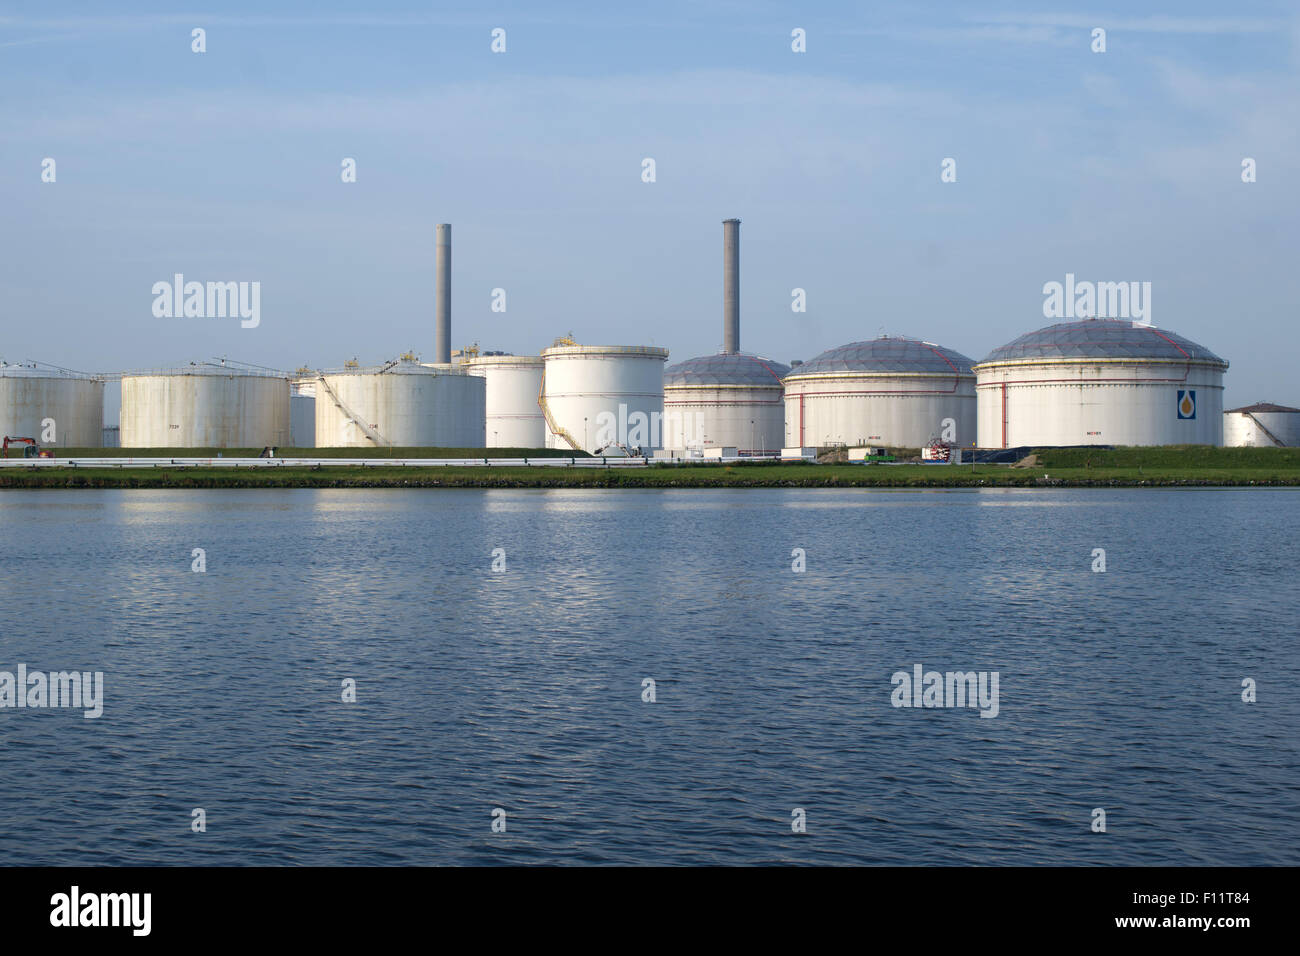 Large Industrial liquid storage facility Amsterdam - Stock Image